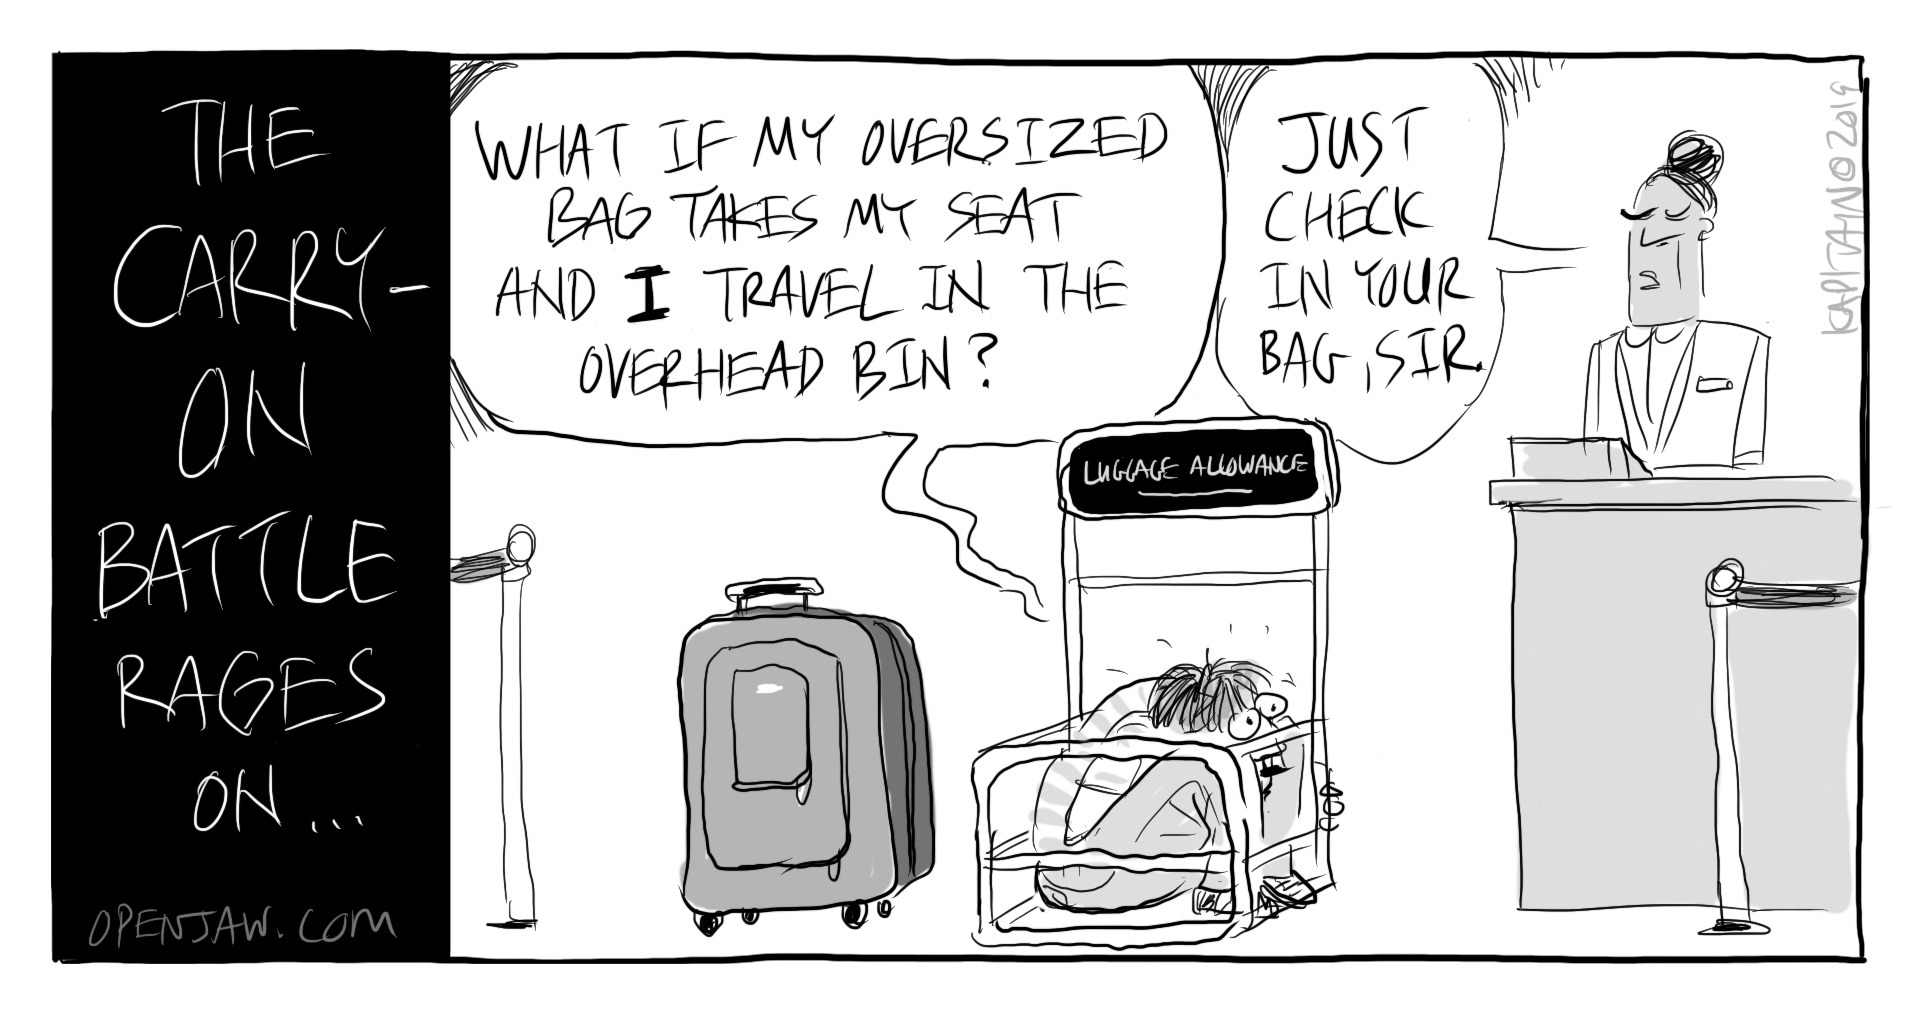 The Carry-On Battle